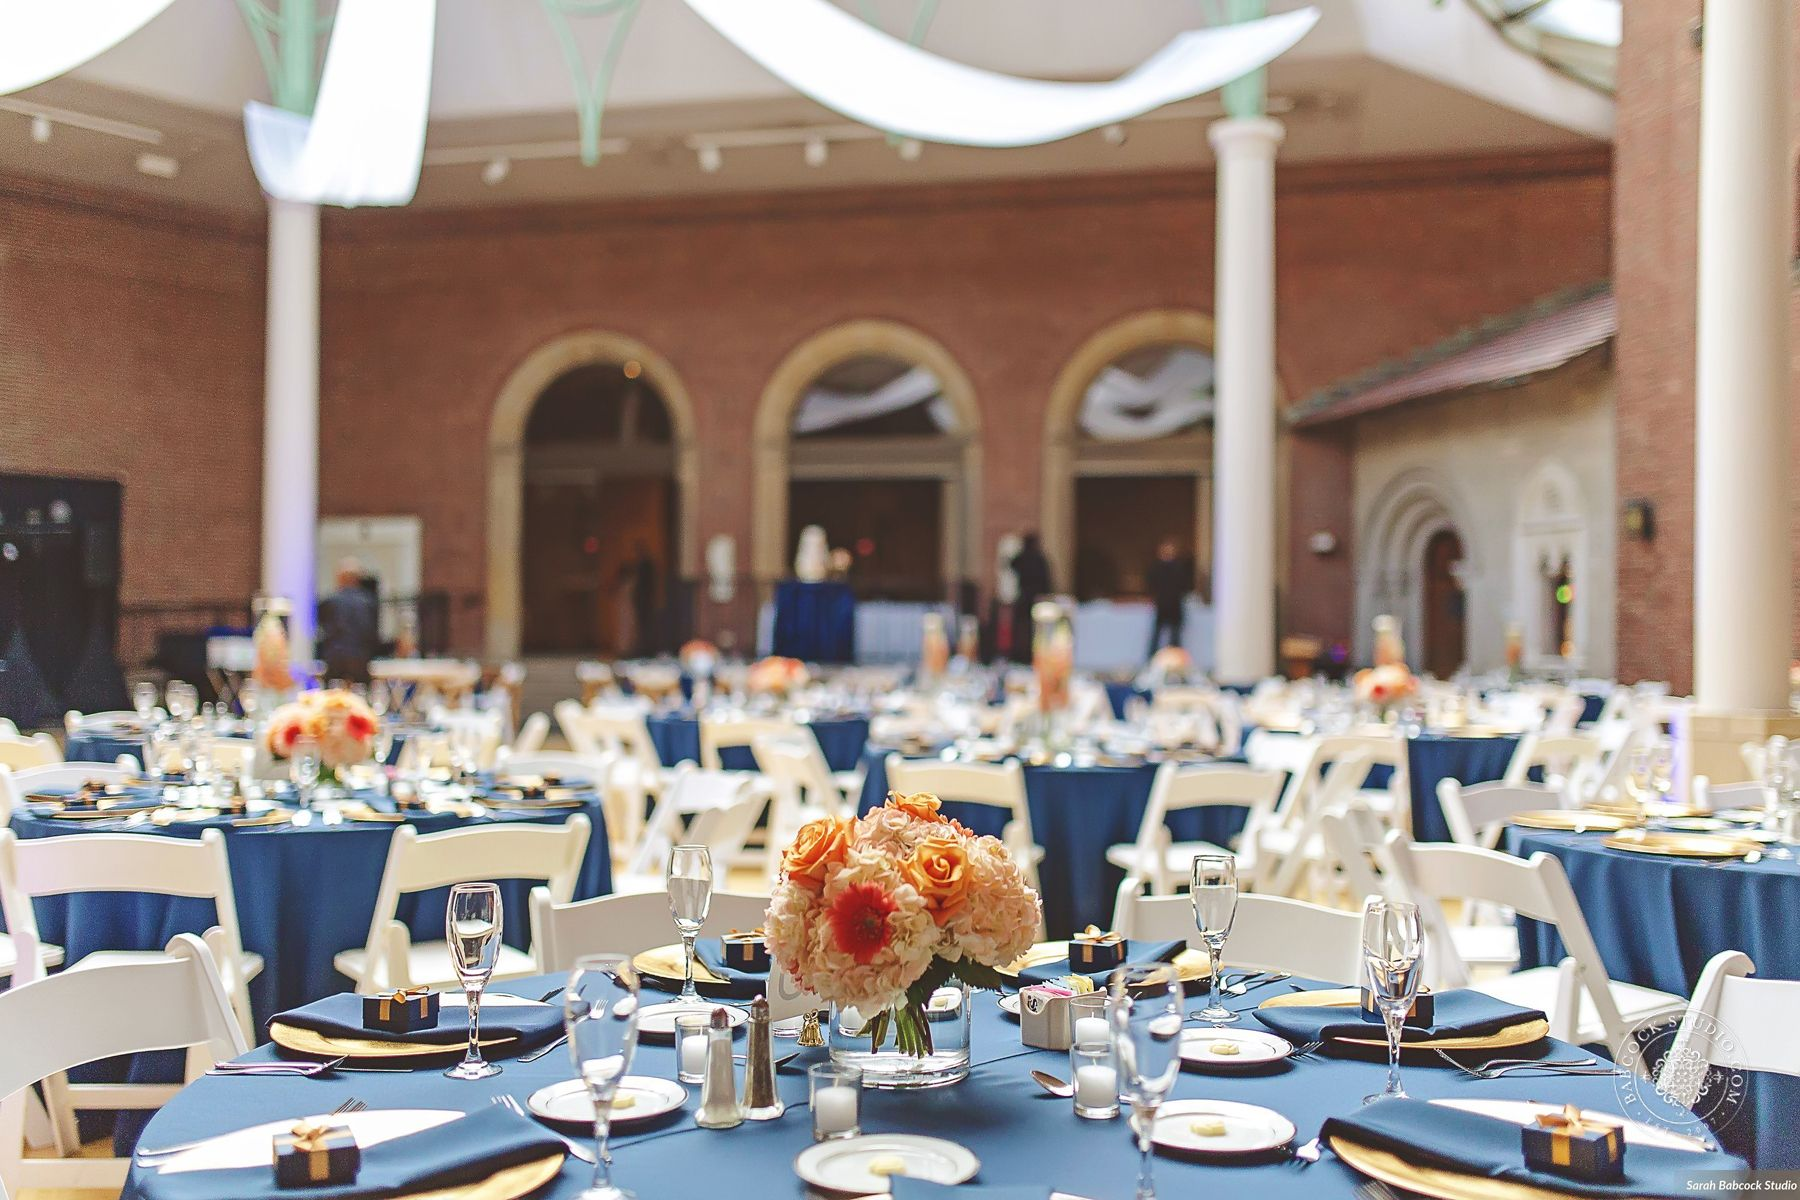 Navy And Gold Wedding At The Dayton Art Institute Image By Babcock Studio Dayton Gold Navy Weddings Events Table Fusion Wedding Event Rental Party Event